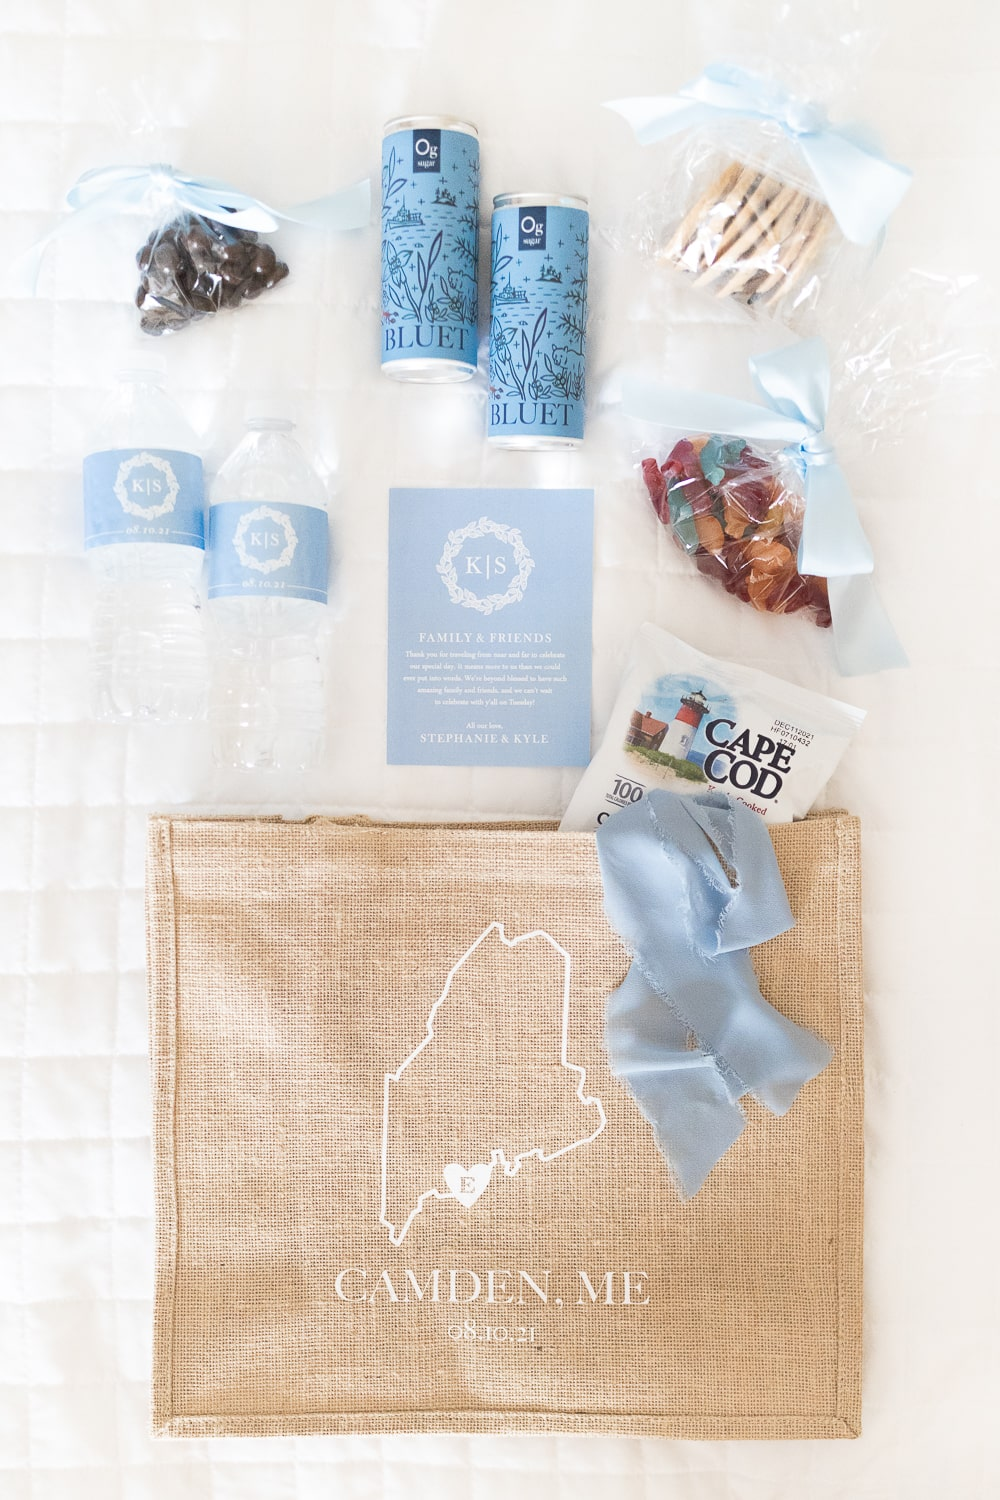 DIY welcome bags for destination wedding created by DIY blogger Stephanie Ziajka on Diary of a Debutante